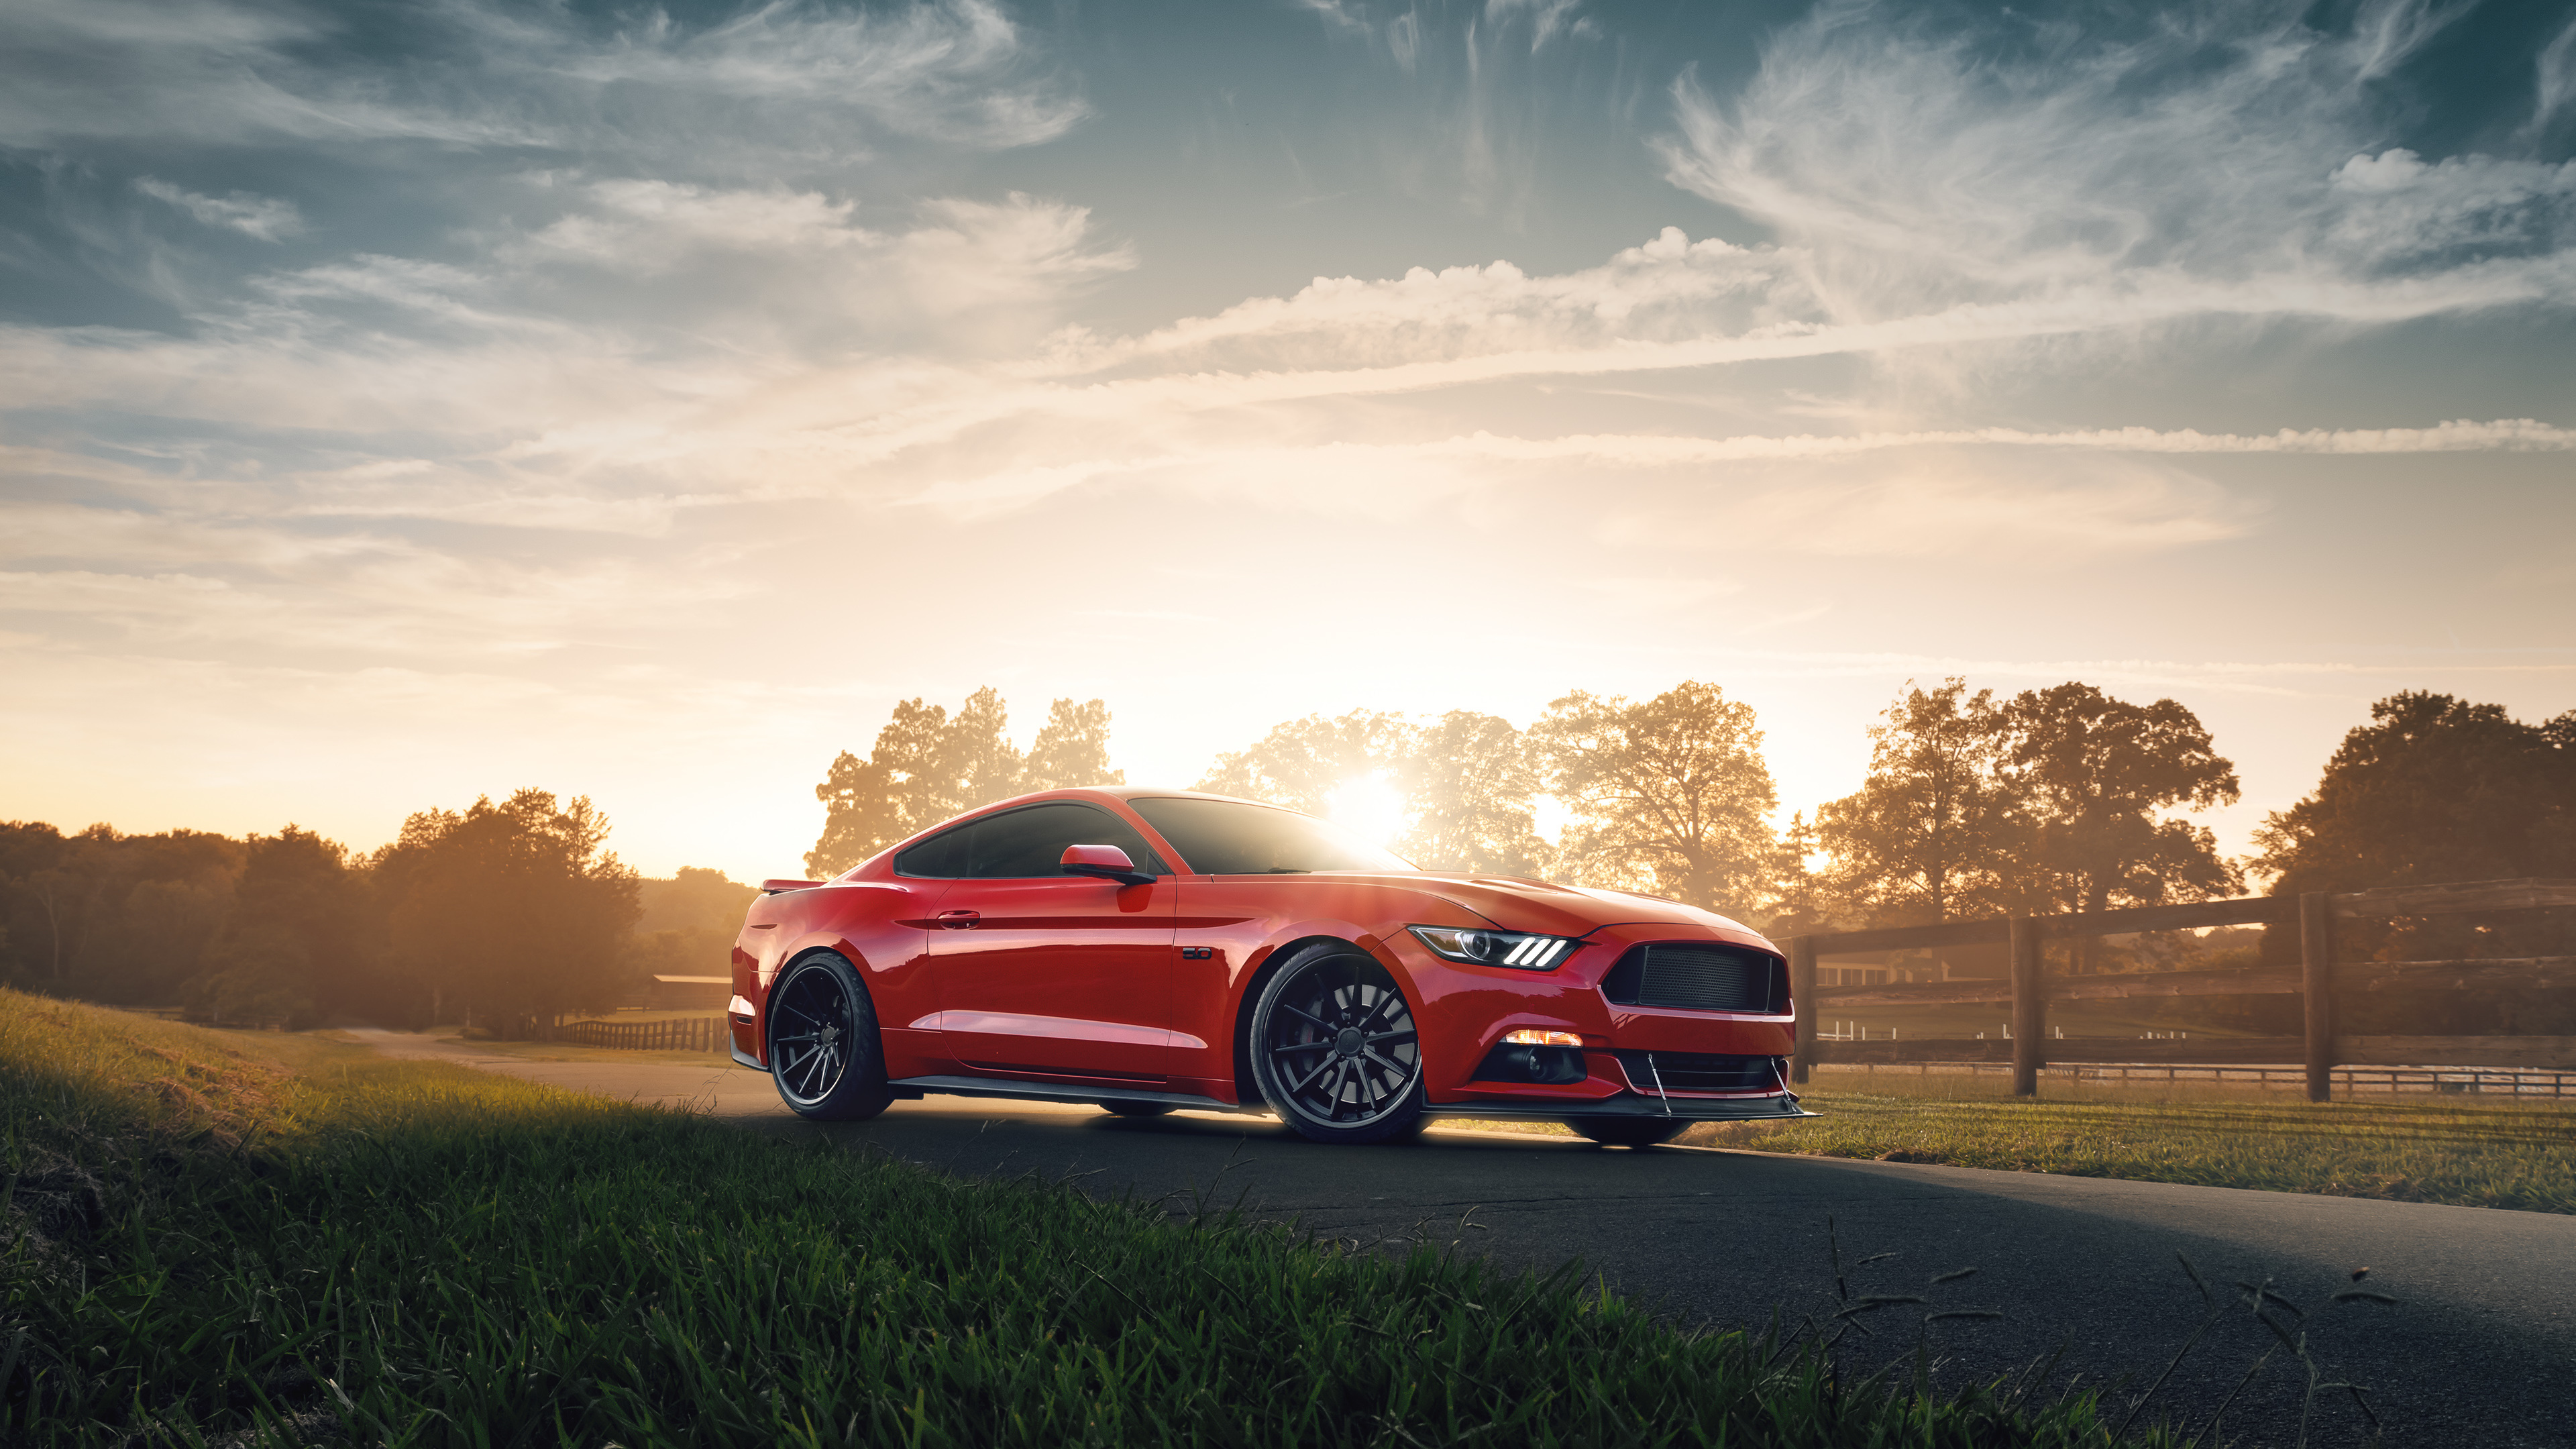 ford mustang gt 2019 4k 1555206867 - Ford Mustang GT 2019 4k - hd-wallpapers, ford wallpapers, ford mustang wallpapers, cars wallpapers, behance wallpapers, 4k-wallpapers, 2019 cars wallpapers